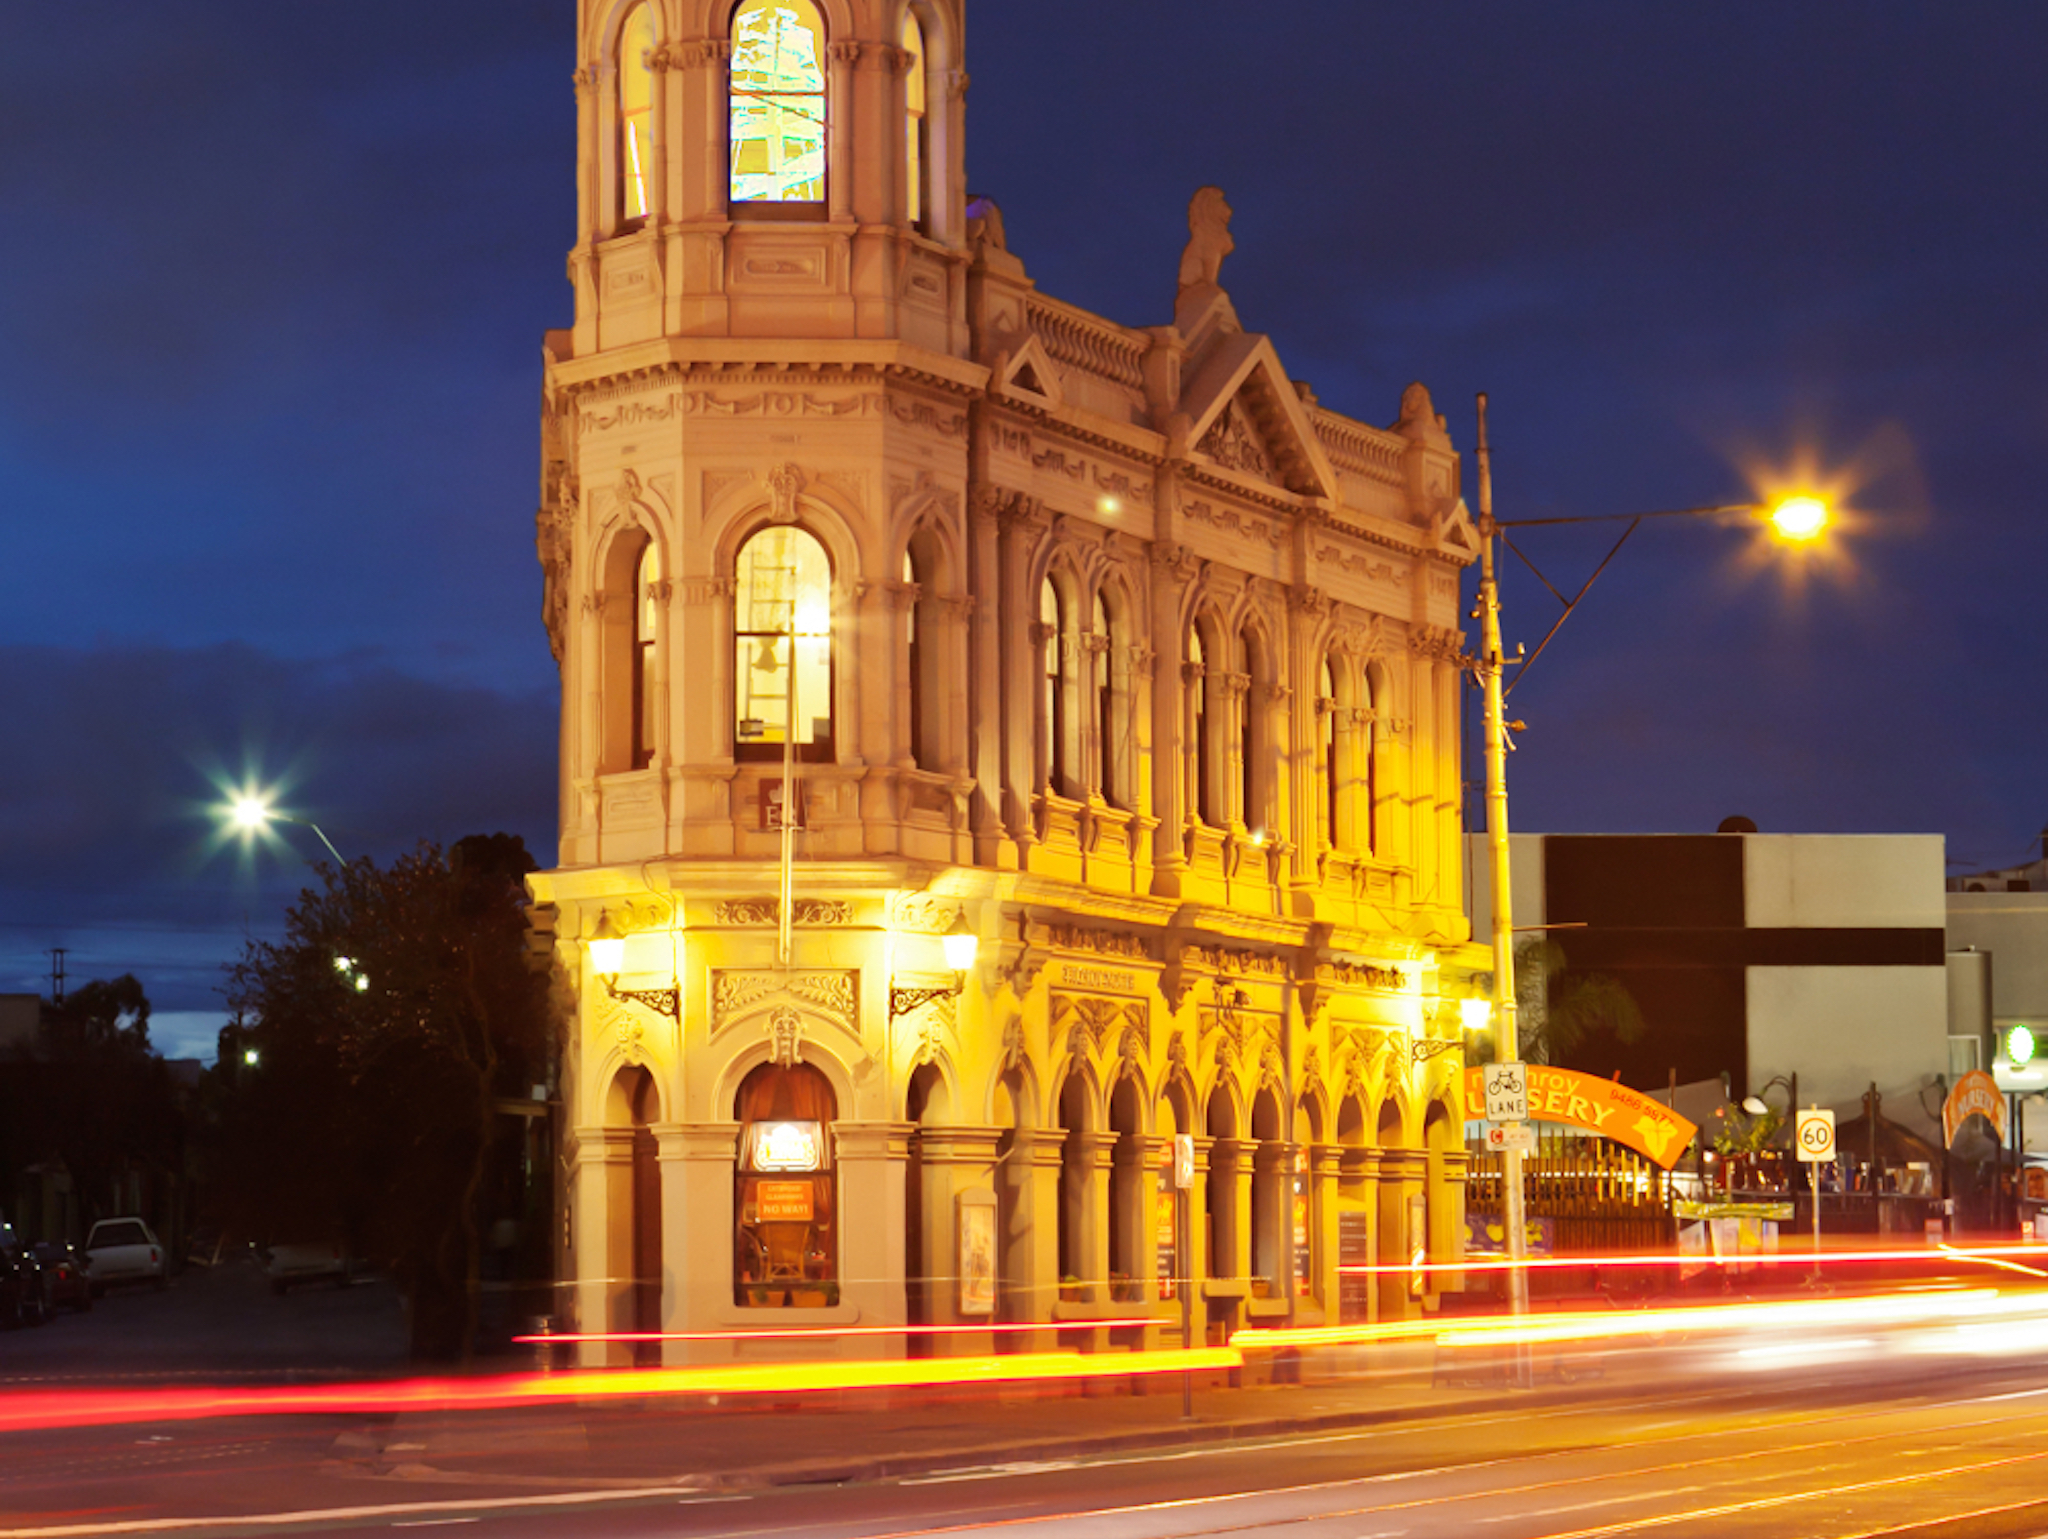 Fitzroy Pinnacle building